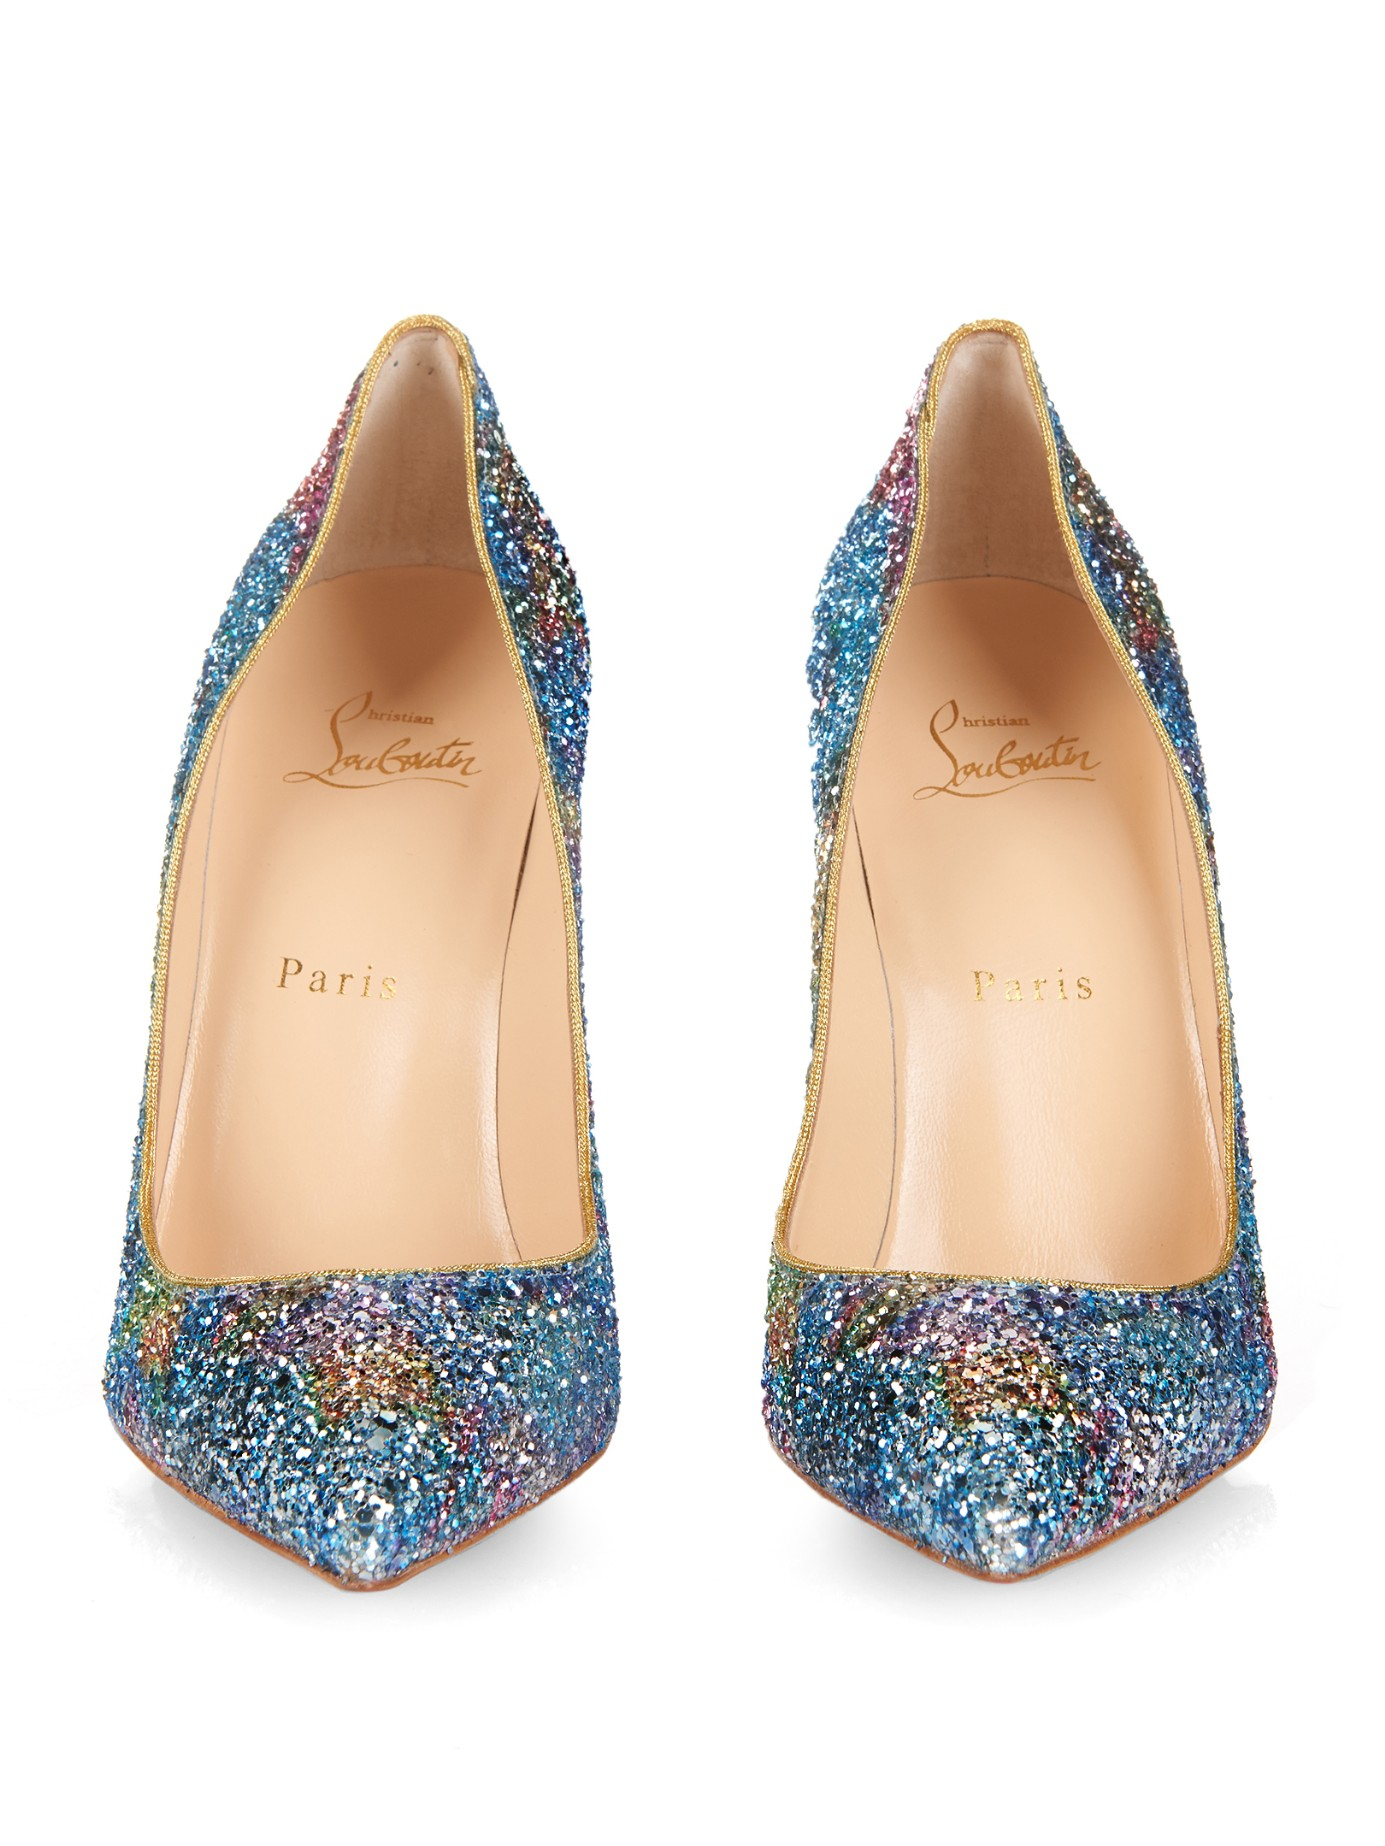 replica shoes christian louboutin - Christian louboutin Pigalle Follies 100mm Pumps in Multicolor ...